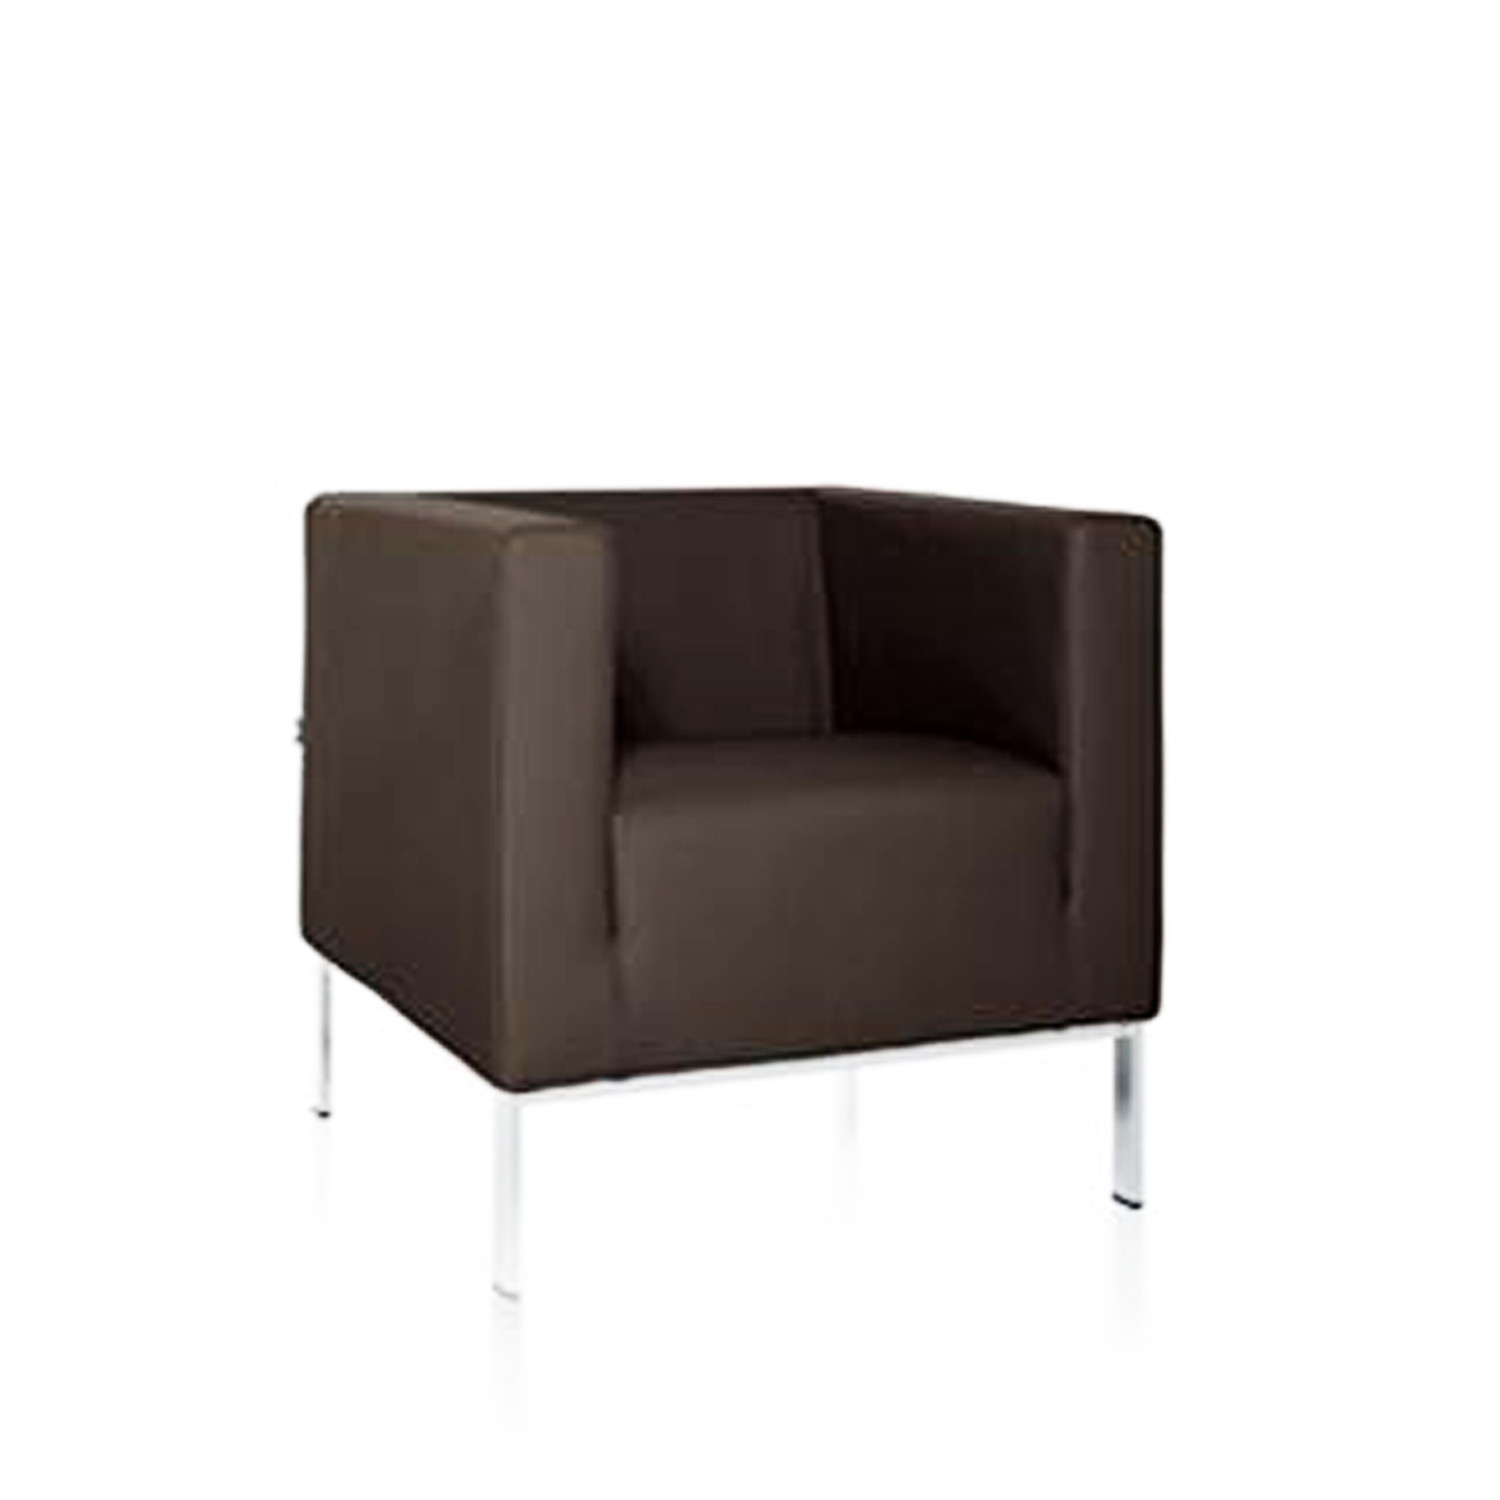 square sofa and armchair reception soft seating apres